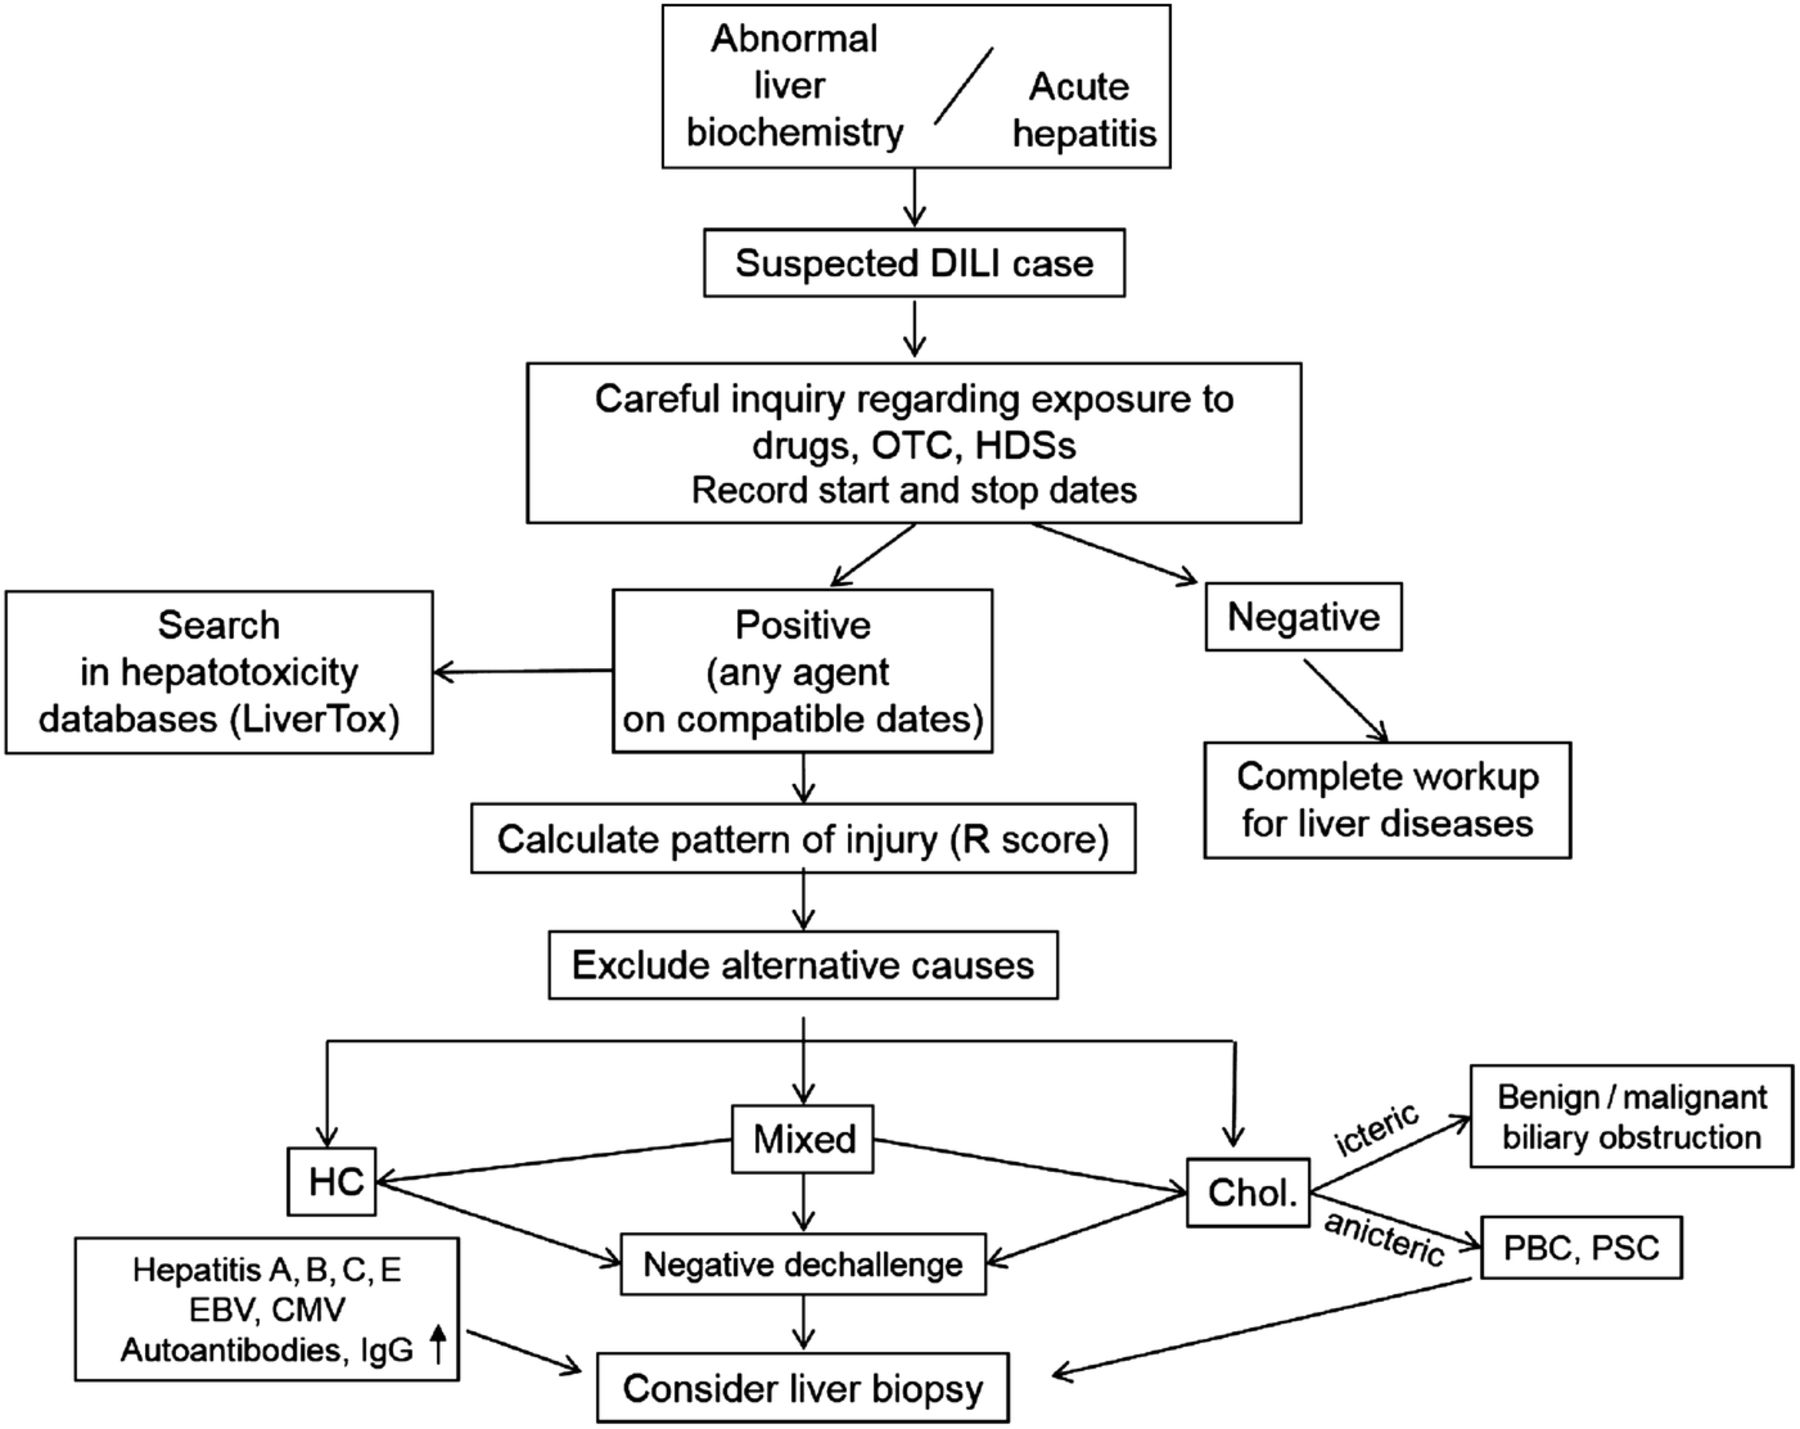 drug induced liver injury and its relationship to autoimmune hepatitis